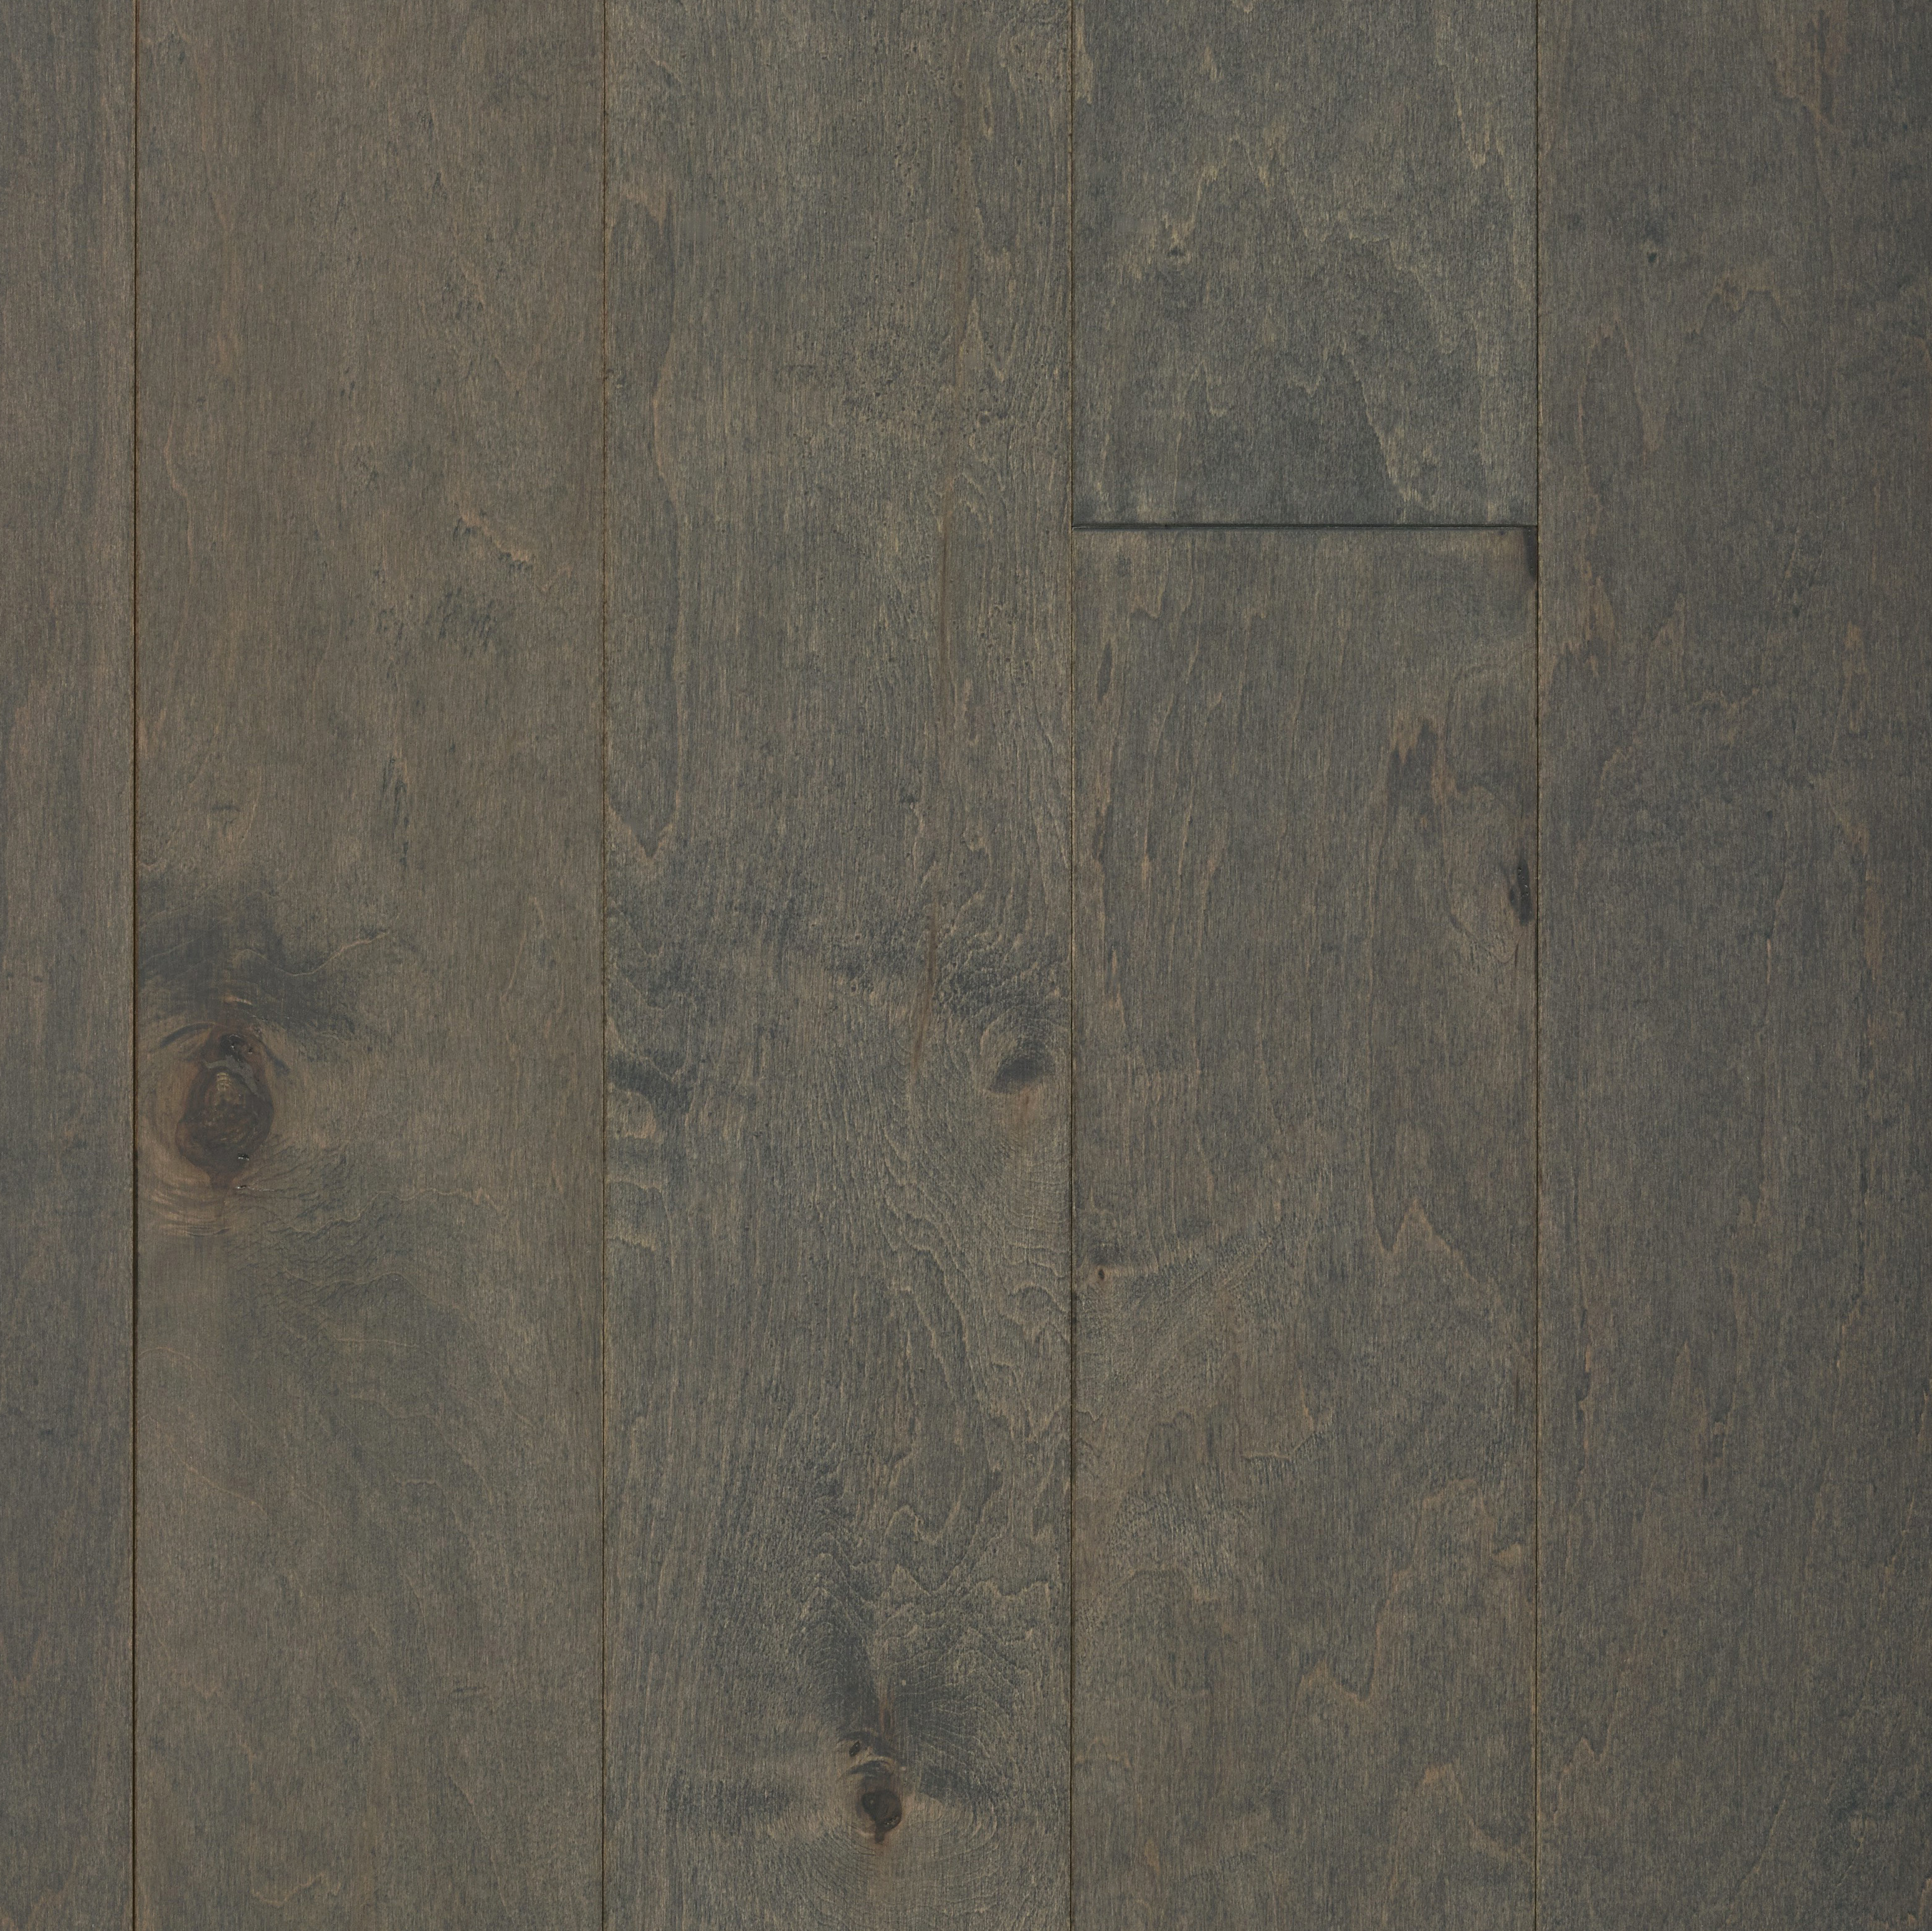 Graceland Whispering Hill Hardwood Flooring